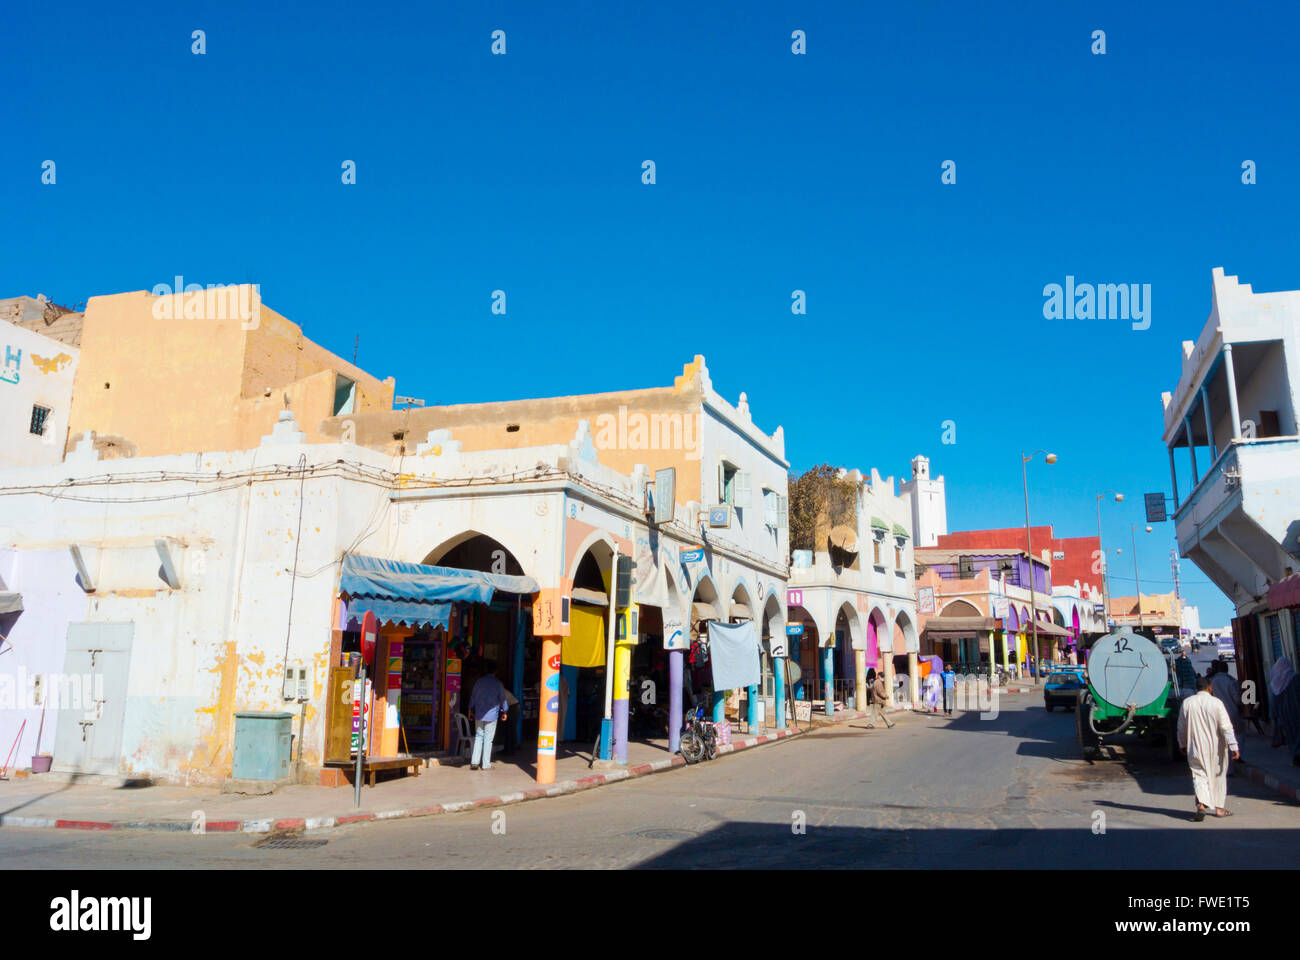 Boulevard Mohammed V, Tan Tan, southern Morocco, northern Africa - Stock Image